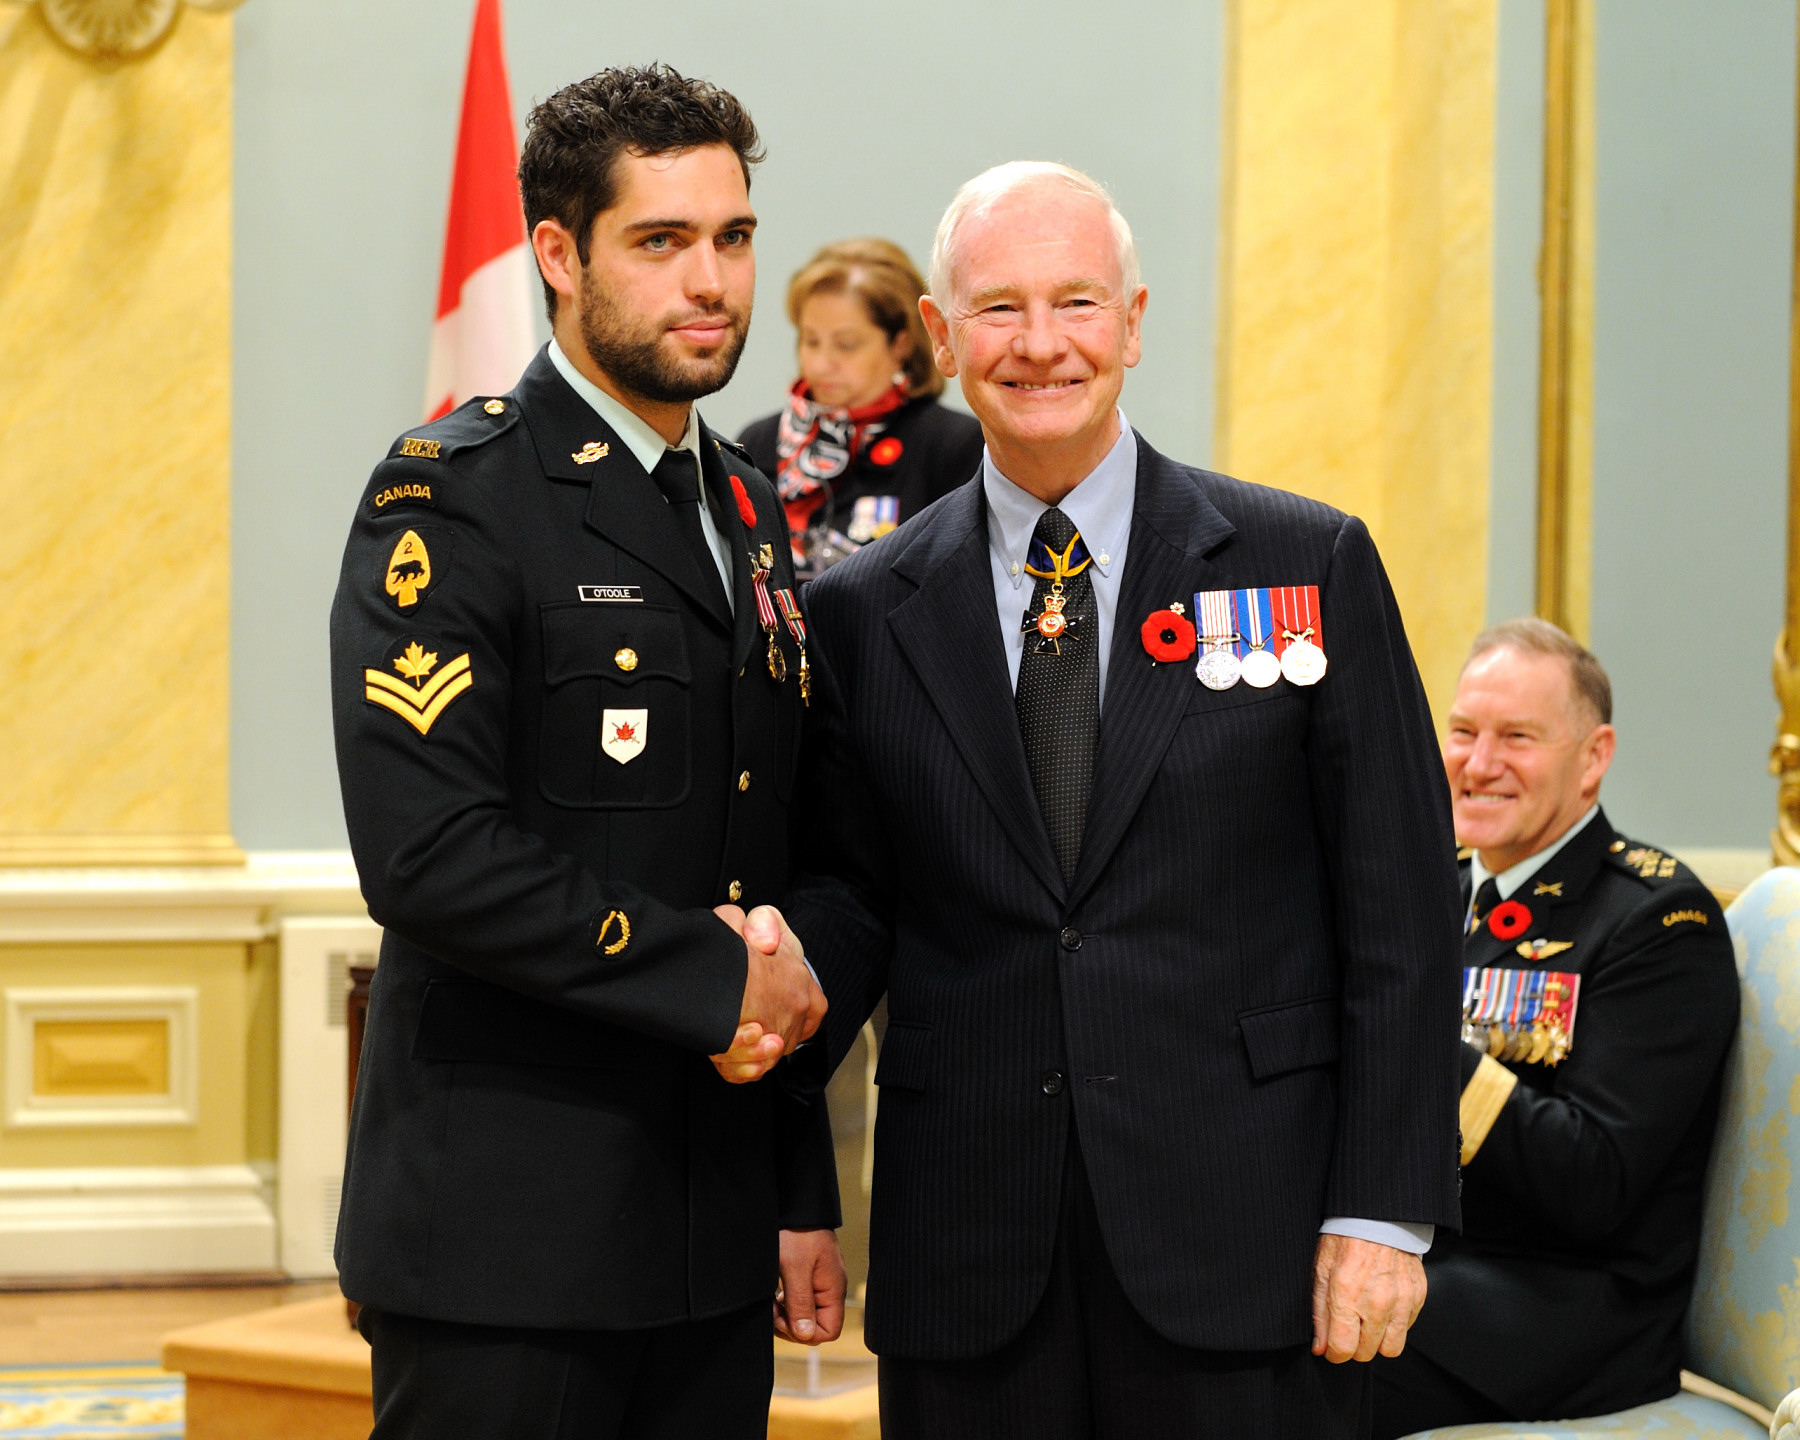 Corporal Joshua O'Toole, M.M.V., received the Medal of Military Valour from the Governor General. On October 21, 2008, Corporal O'Toole was manning the defensive tower of a combat outpost, in Afghanistan, when it was attacked by insurgents. As rounds impacted the tower and rocket-propelled grenades sailed over his head, Corporal O'Toole left the security of his location to fire an anti-armour weapon at the attackers' location. After a successful hit, he remained in a highly vulnerable position, taking up a heavy machine gun to continue returning fire. Corporal O'Toole's fearless and relentless actions suppressed the enemy, allowing friendly forces to quickly establish defensive positions and defeat the attack.